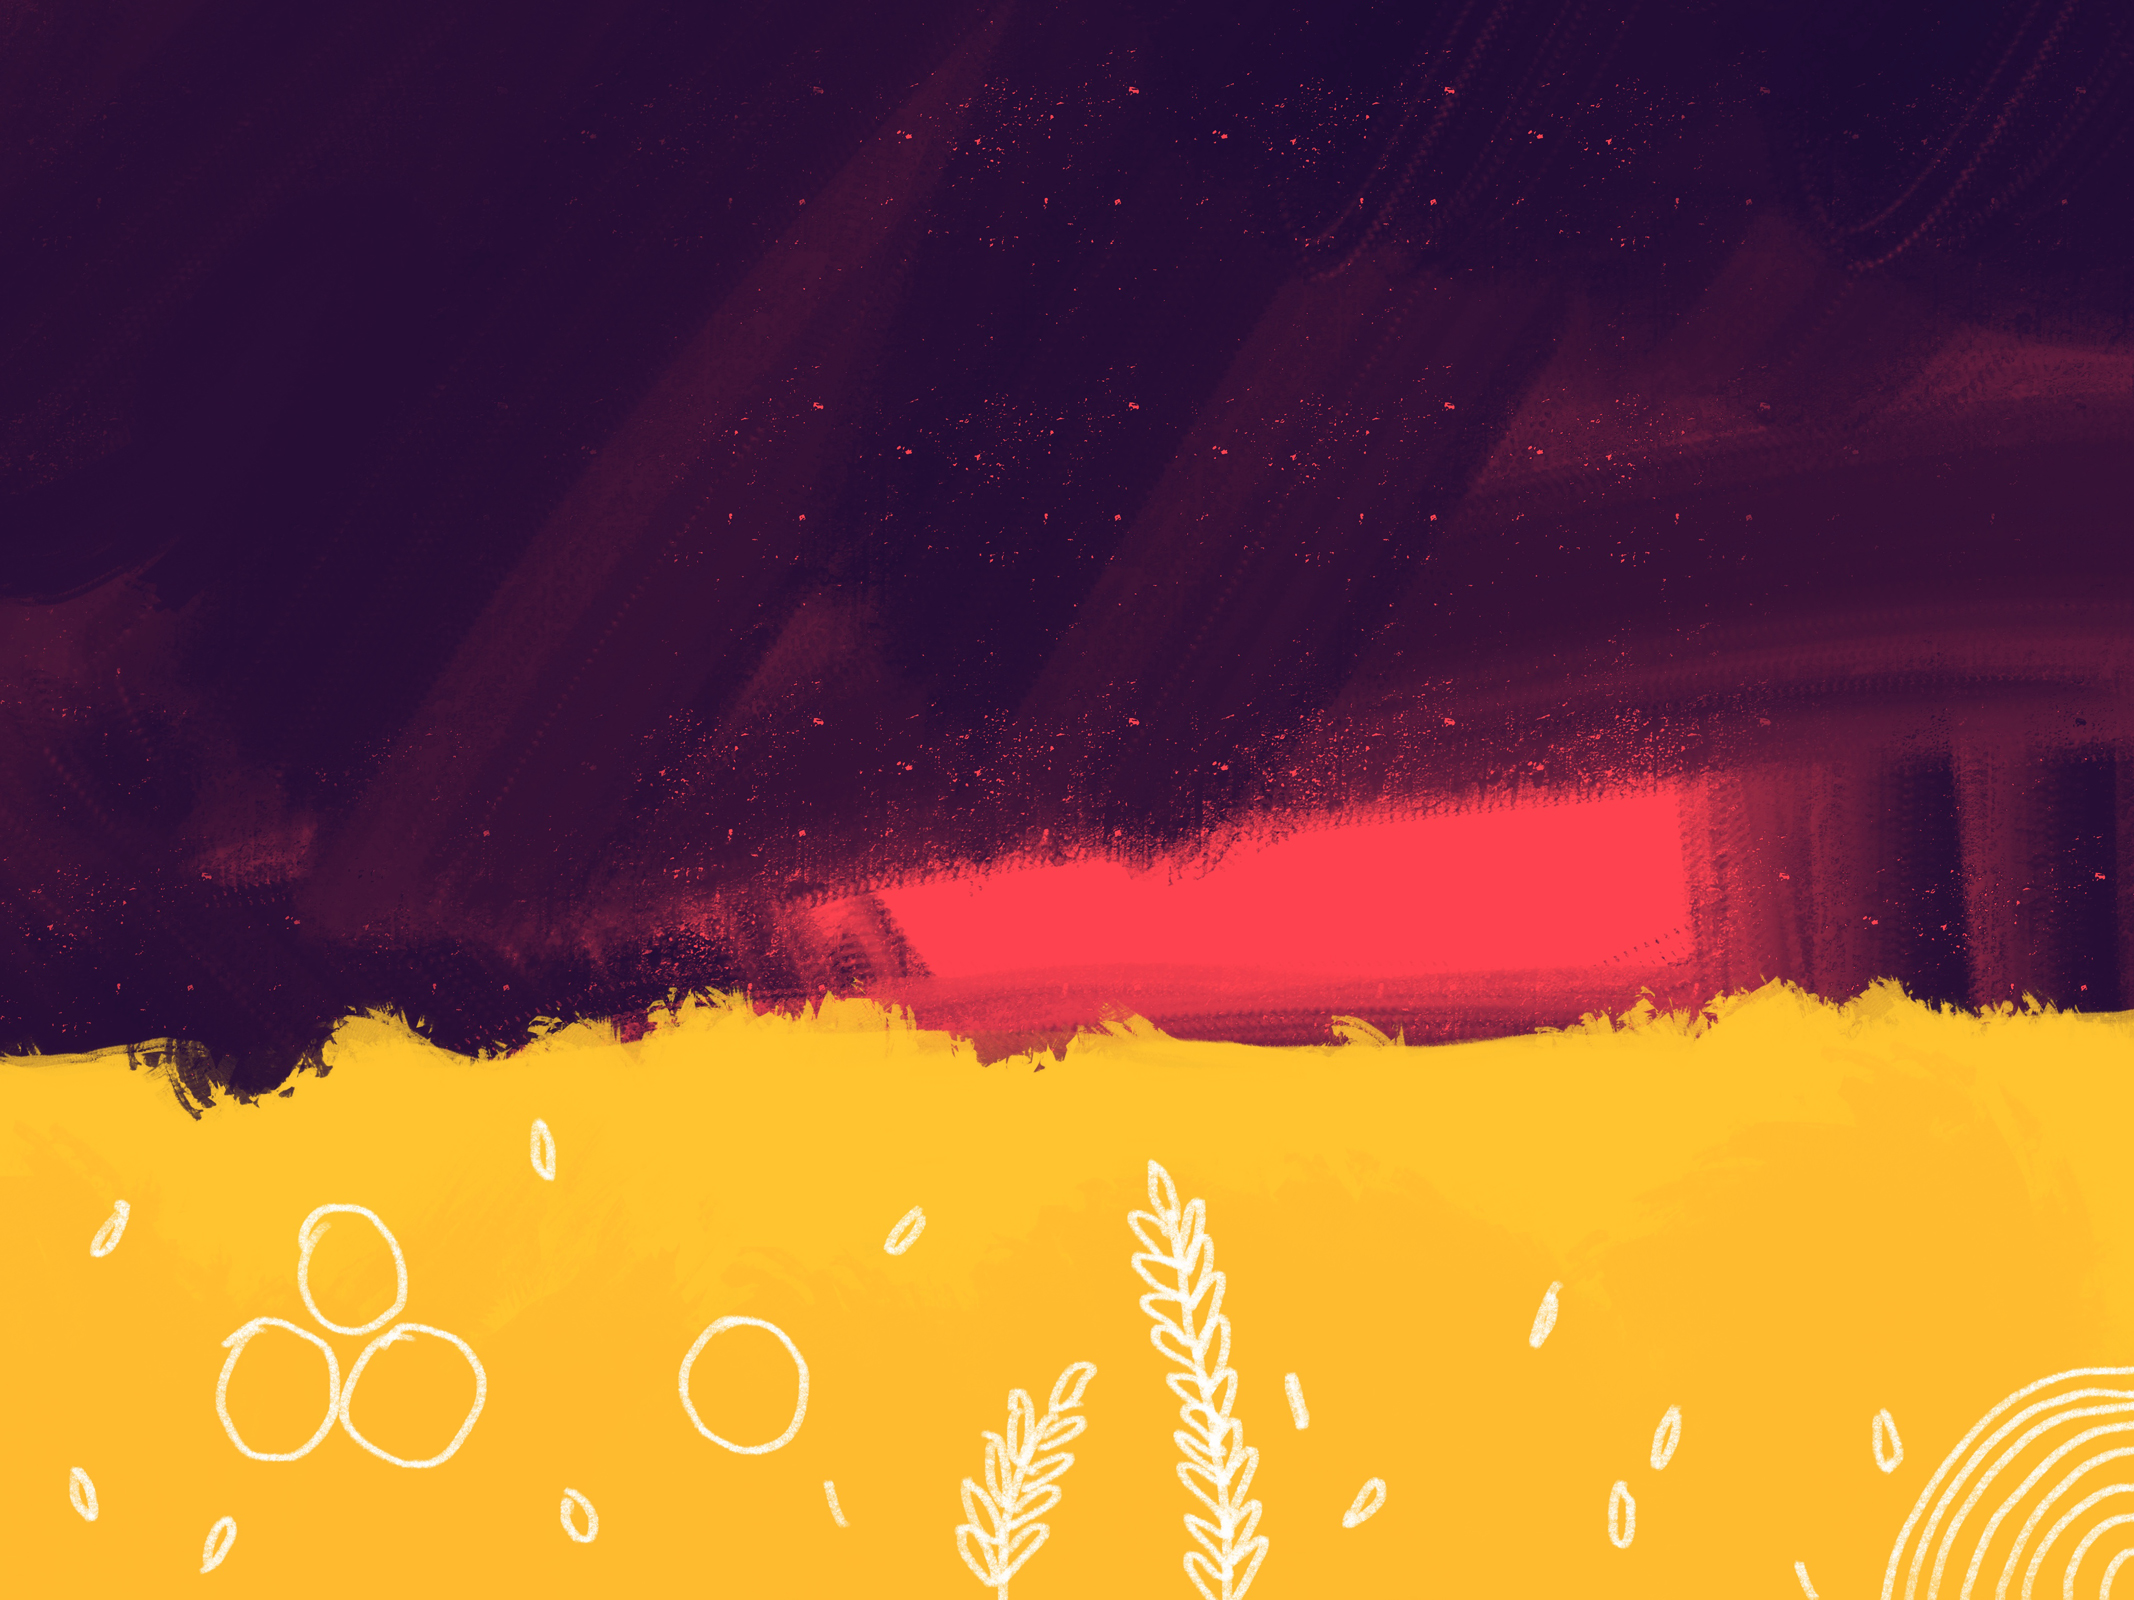 Slowed by the sun #6